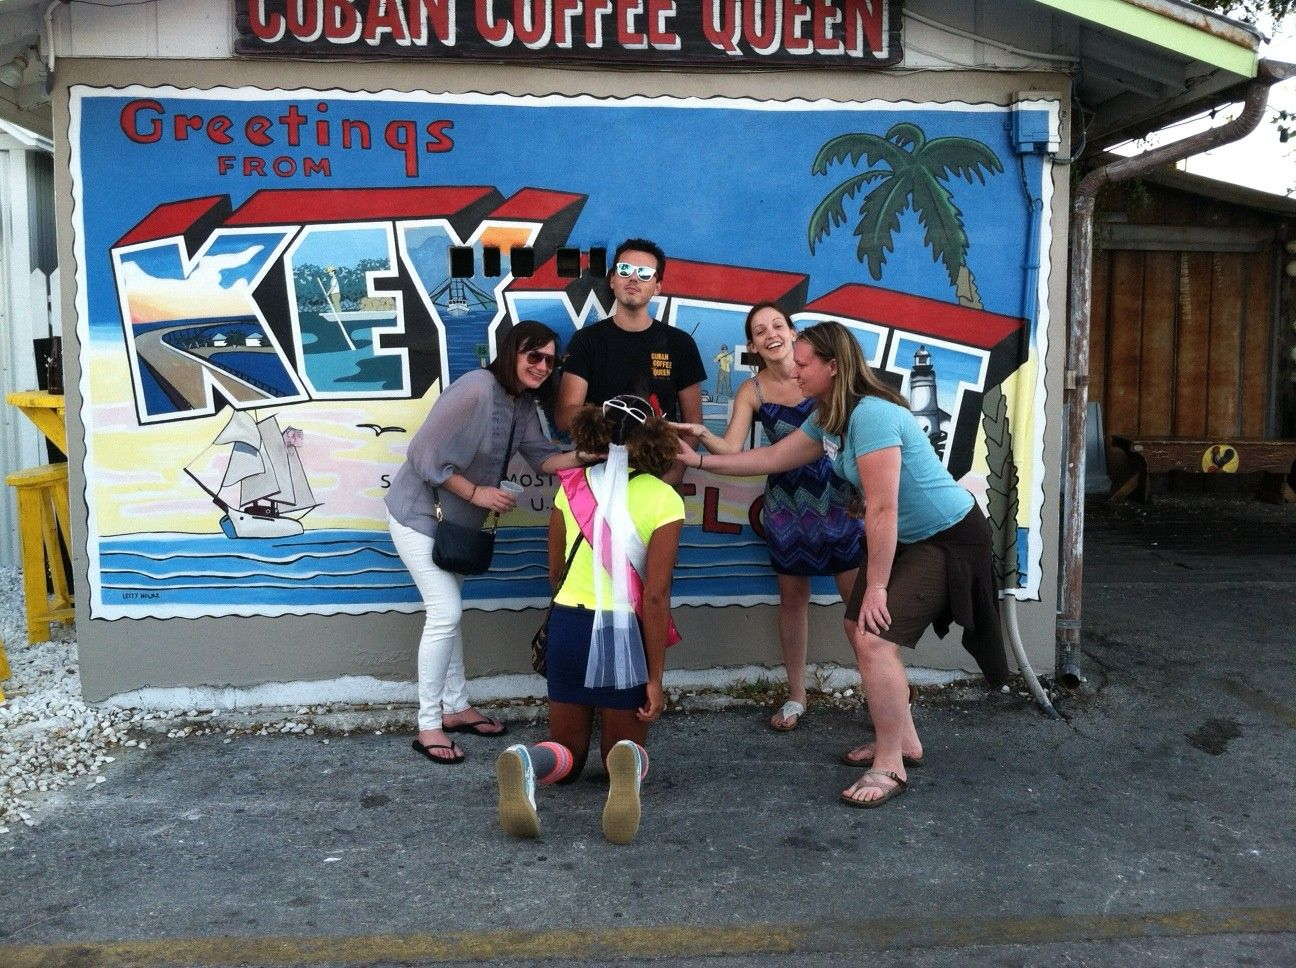 Key West Wedding Scavenger Hunts www.keywesthunt.com 305-292-9994